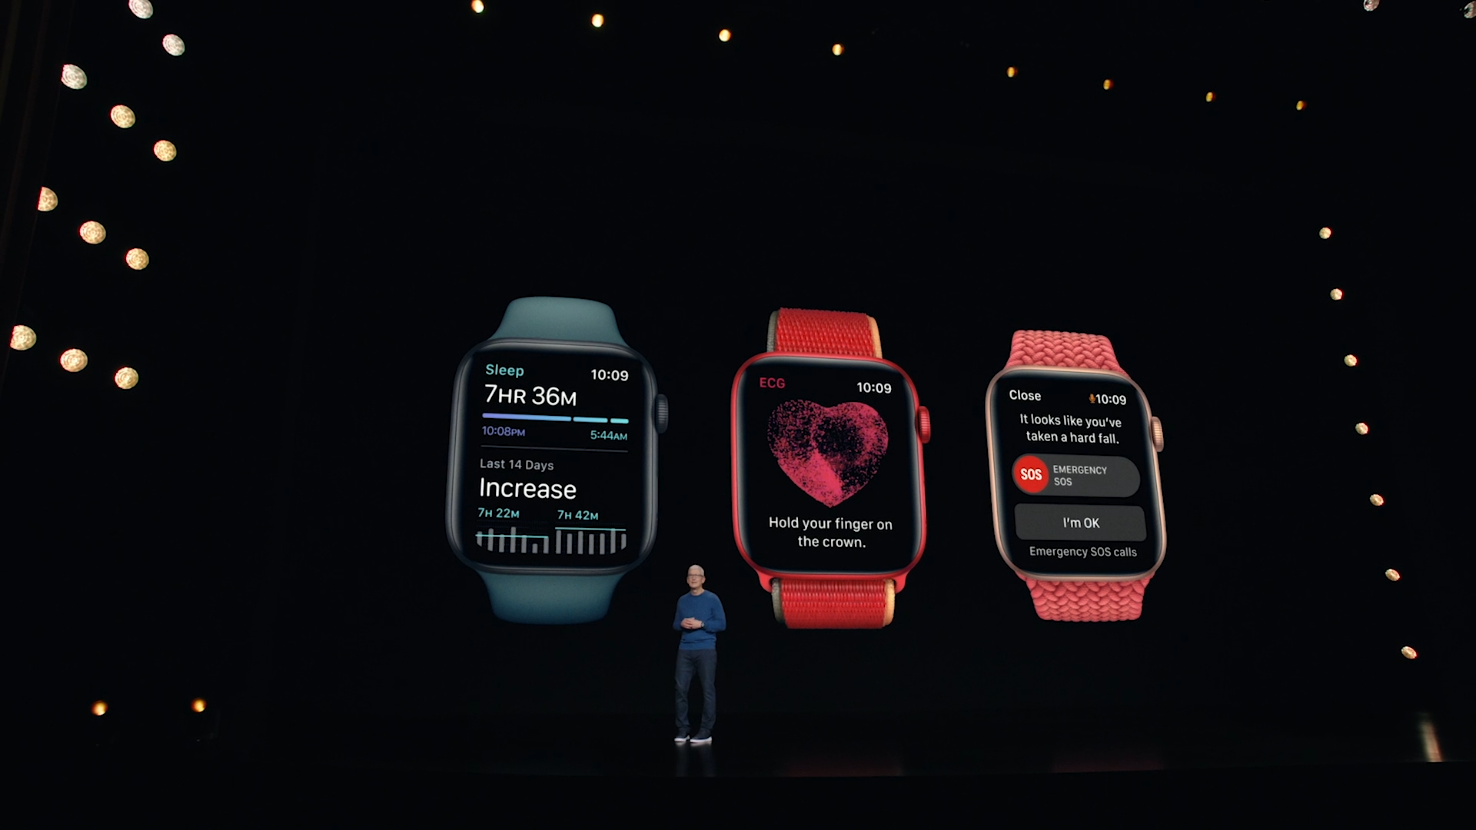 Apple launches new Watch with bigger screen